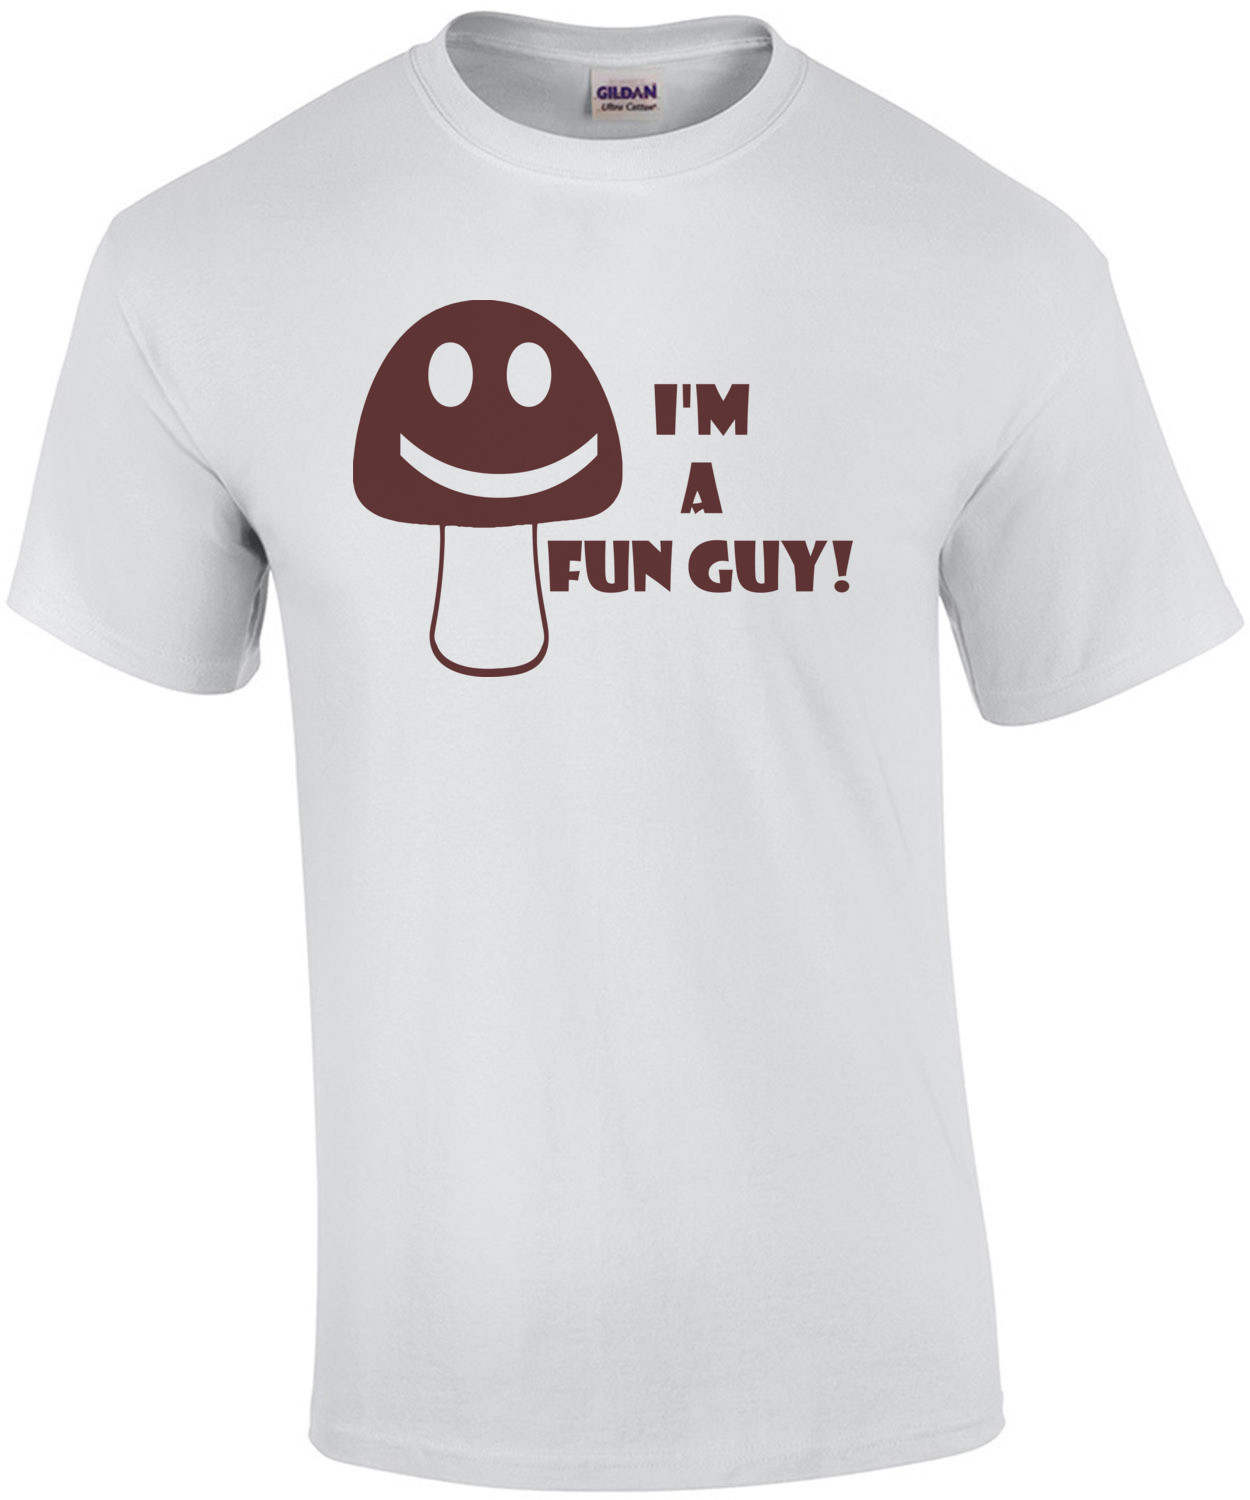 I'm a Fun Guy (fungi) Shirt